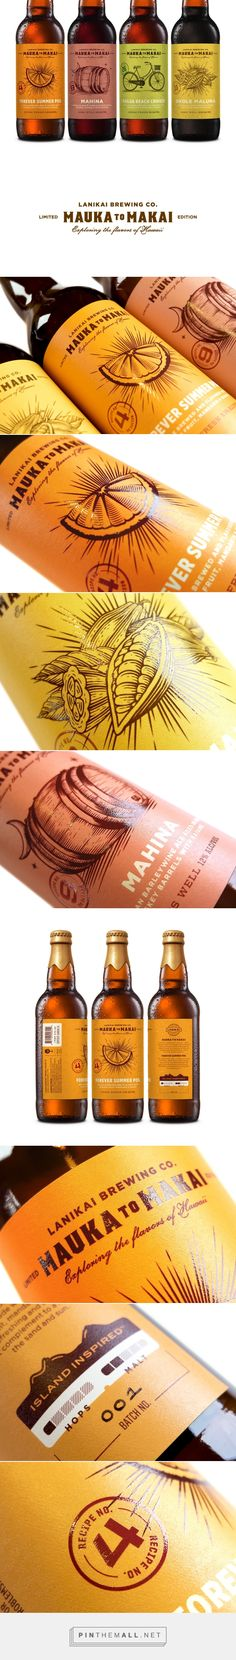 Lanikai Brewing Co: Mauka to Makai - Packaging of the World - Creative Package Design Gallery - http://www.packagingoftheworld.com/2017/01/kincsem-kastely-winery.html